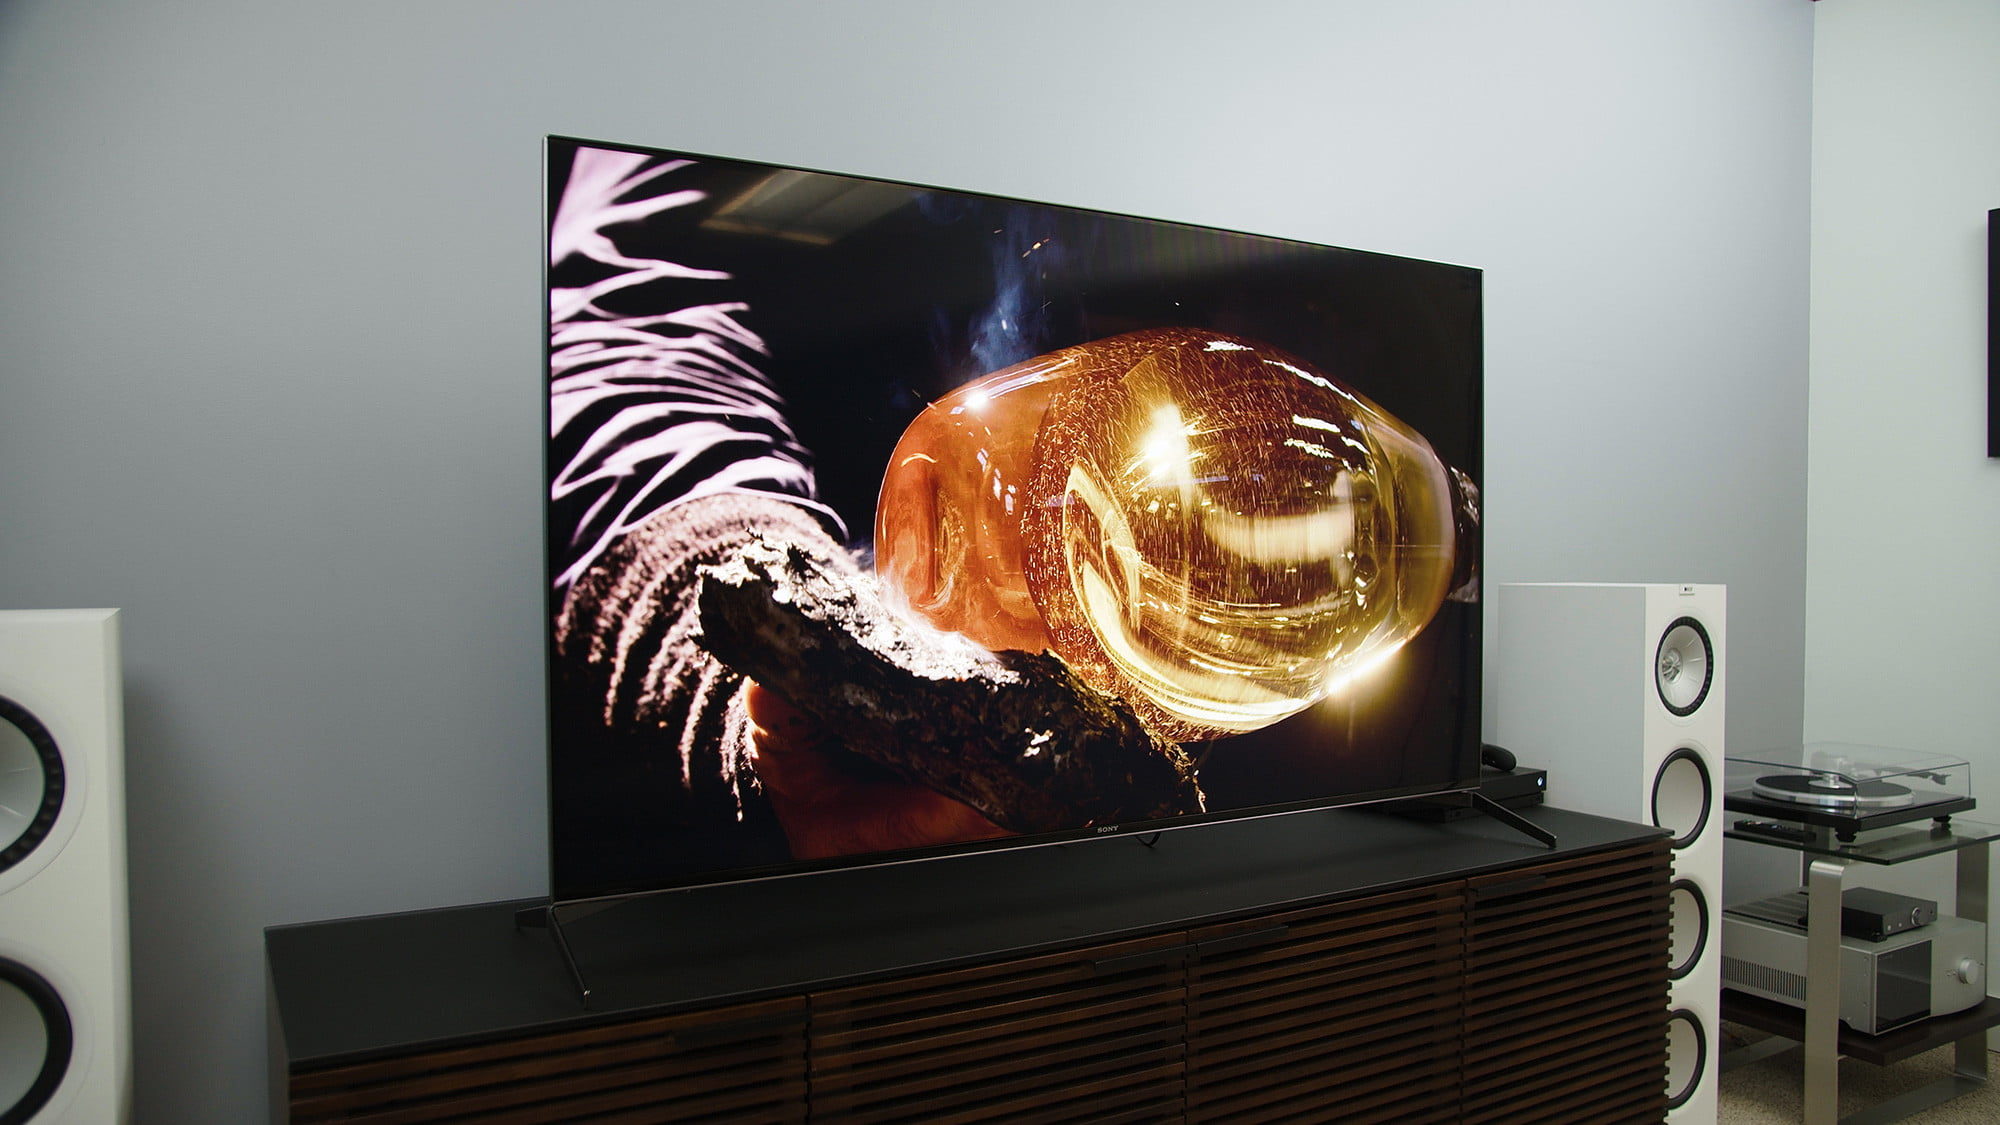 sony x950h 4k hdr tv review sonyx950h 200807 7